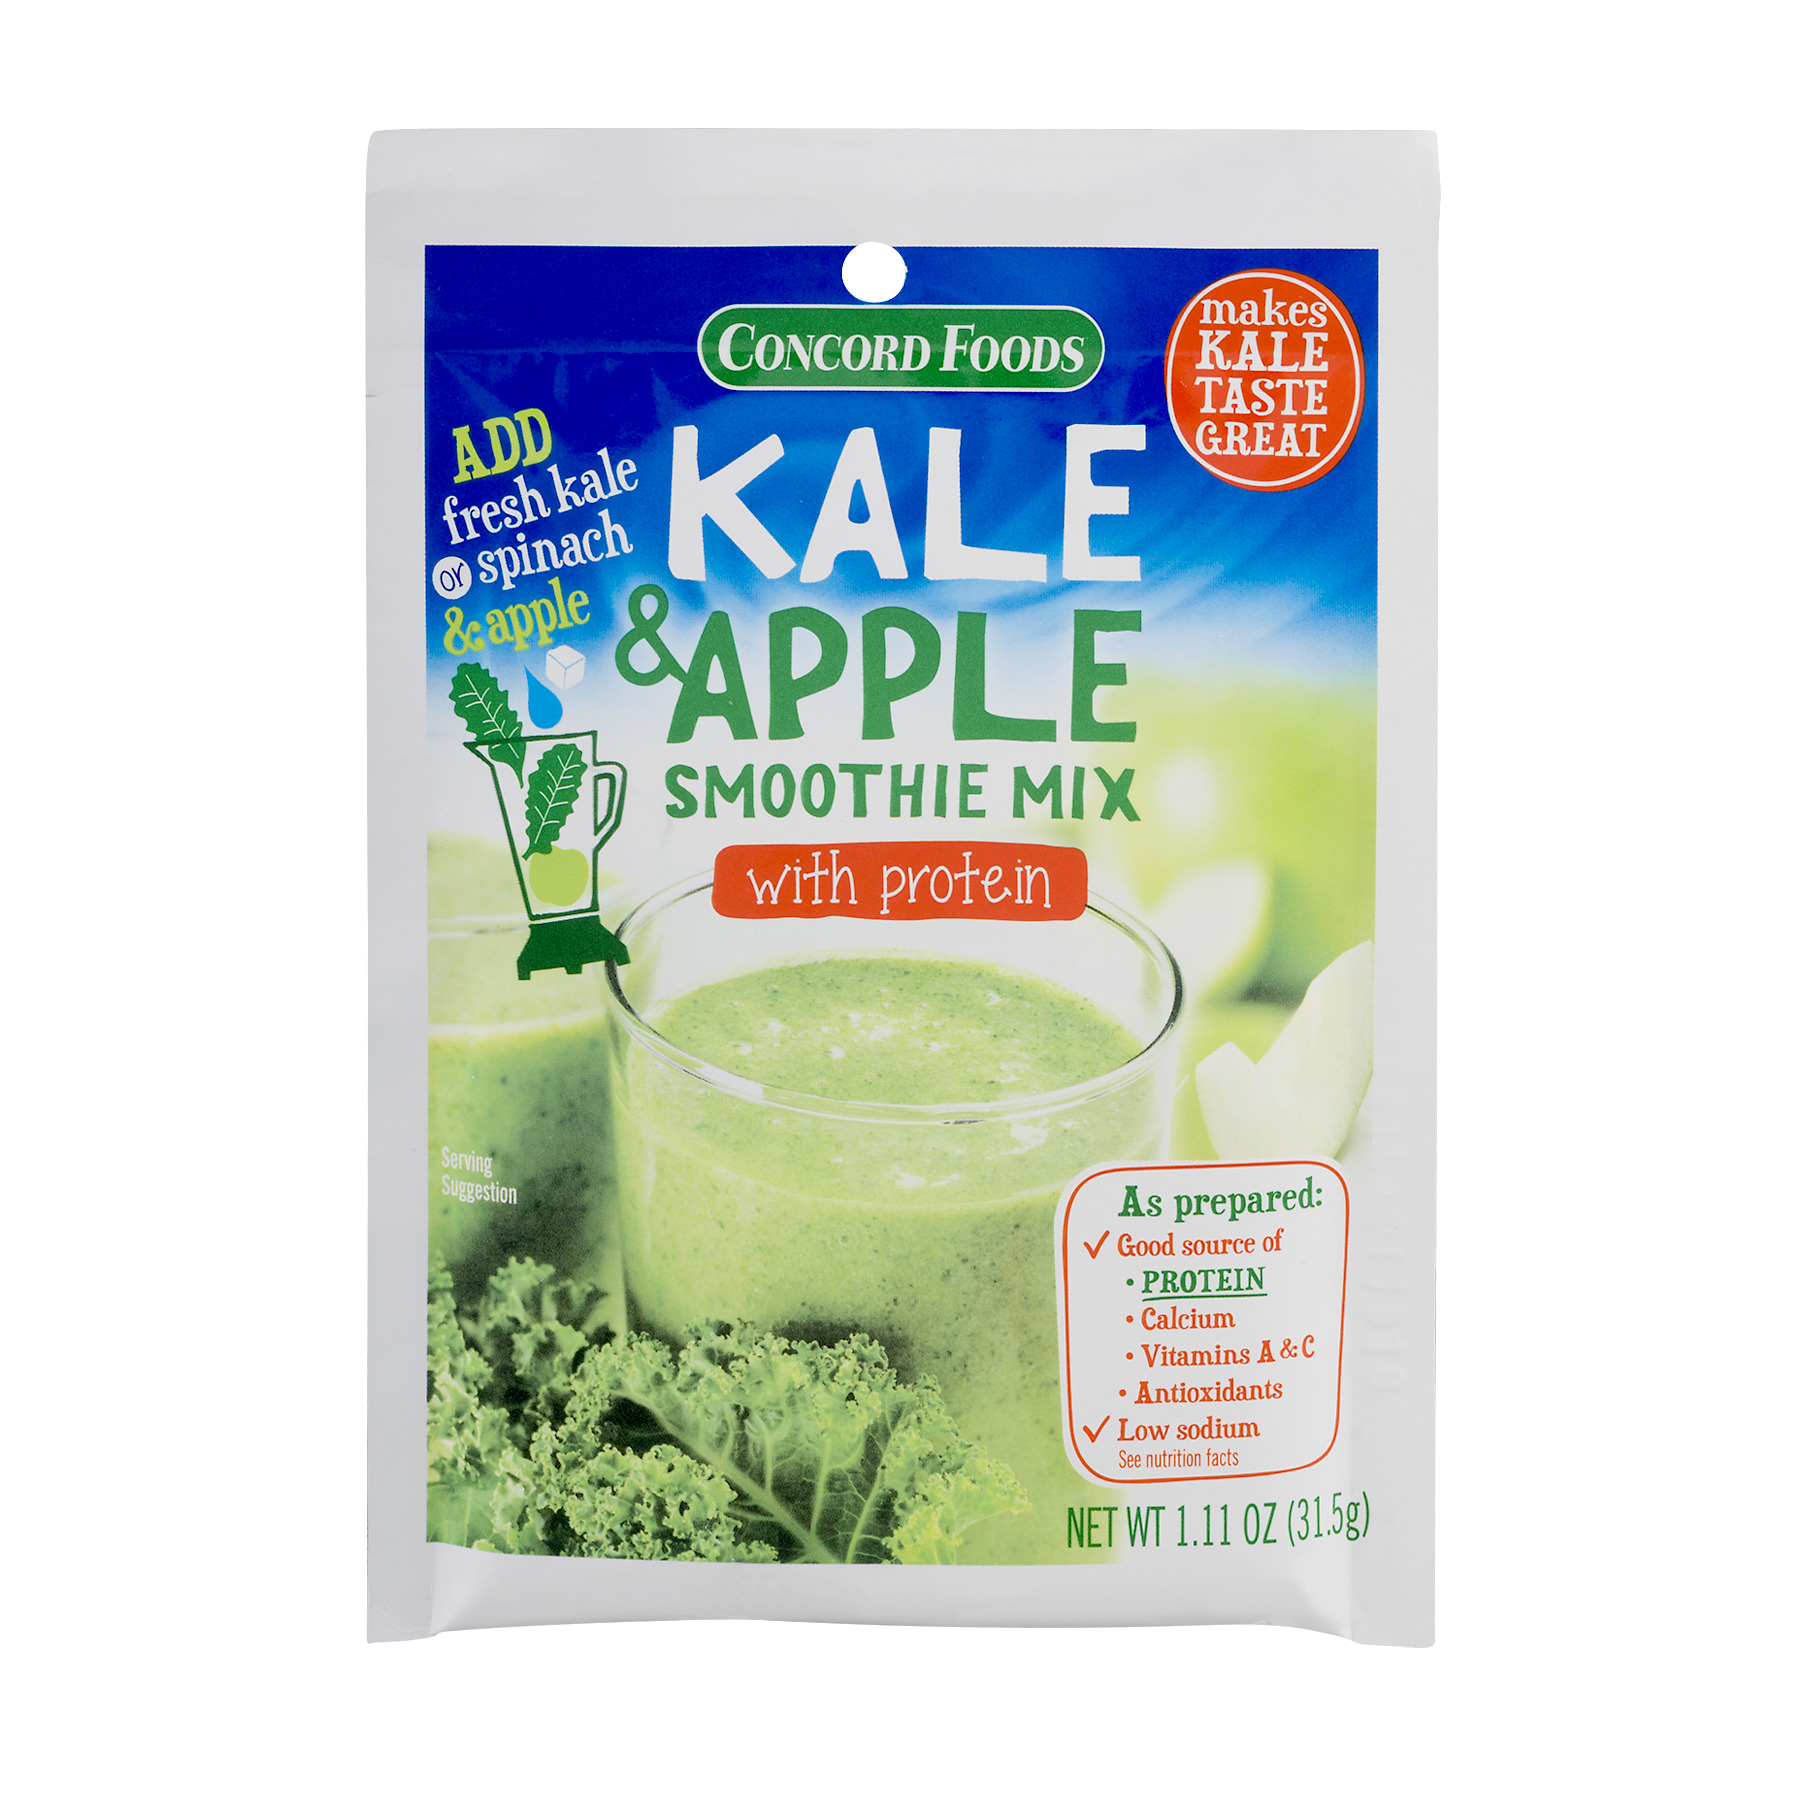 Concord Foods Kale & Apple Smoothie Mix With Protein, 1.11 OZ